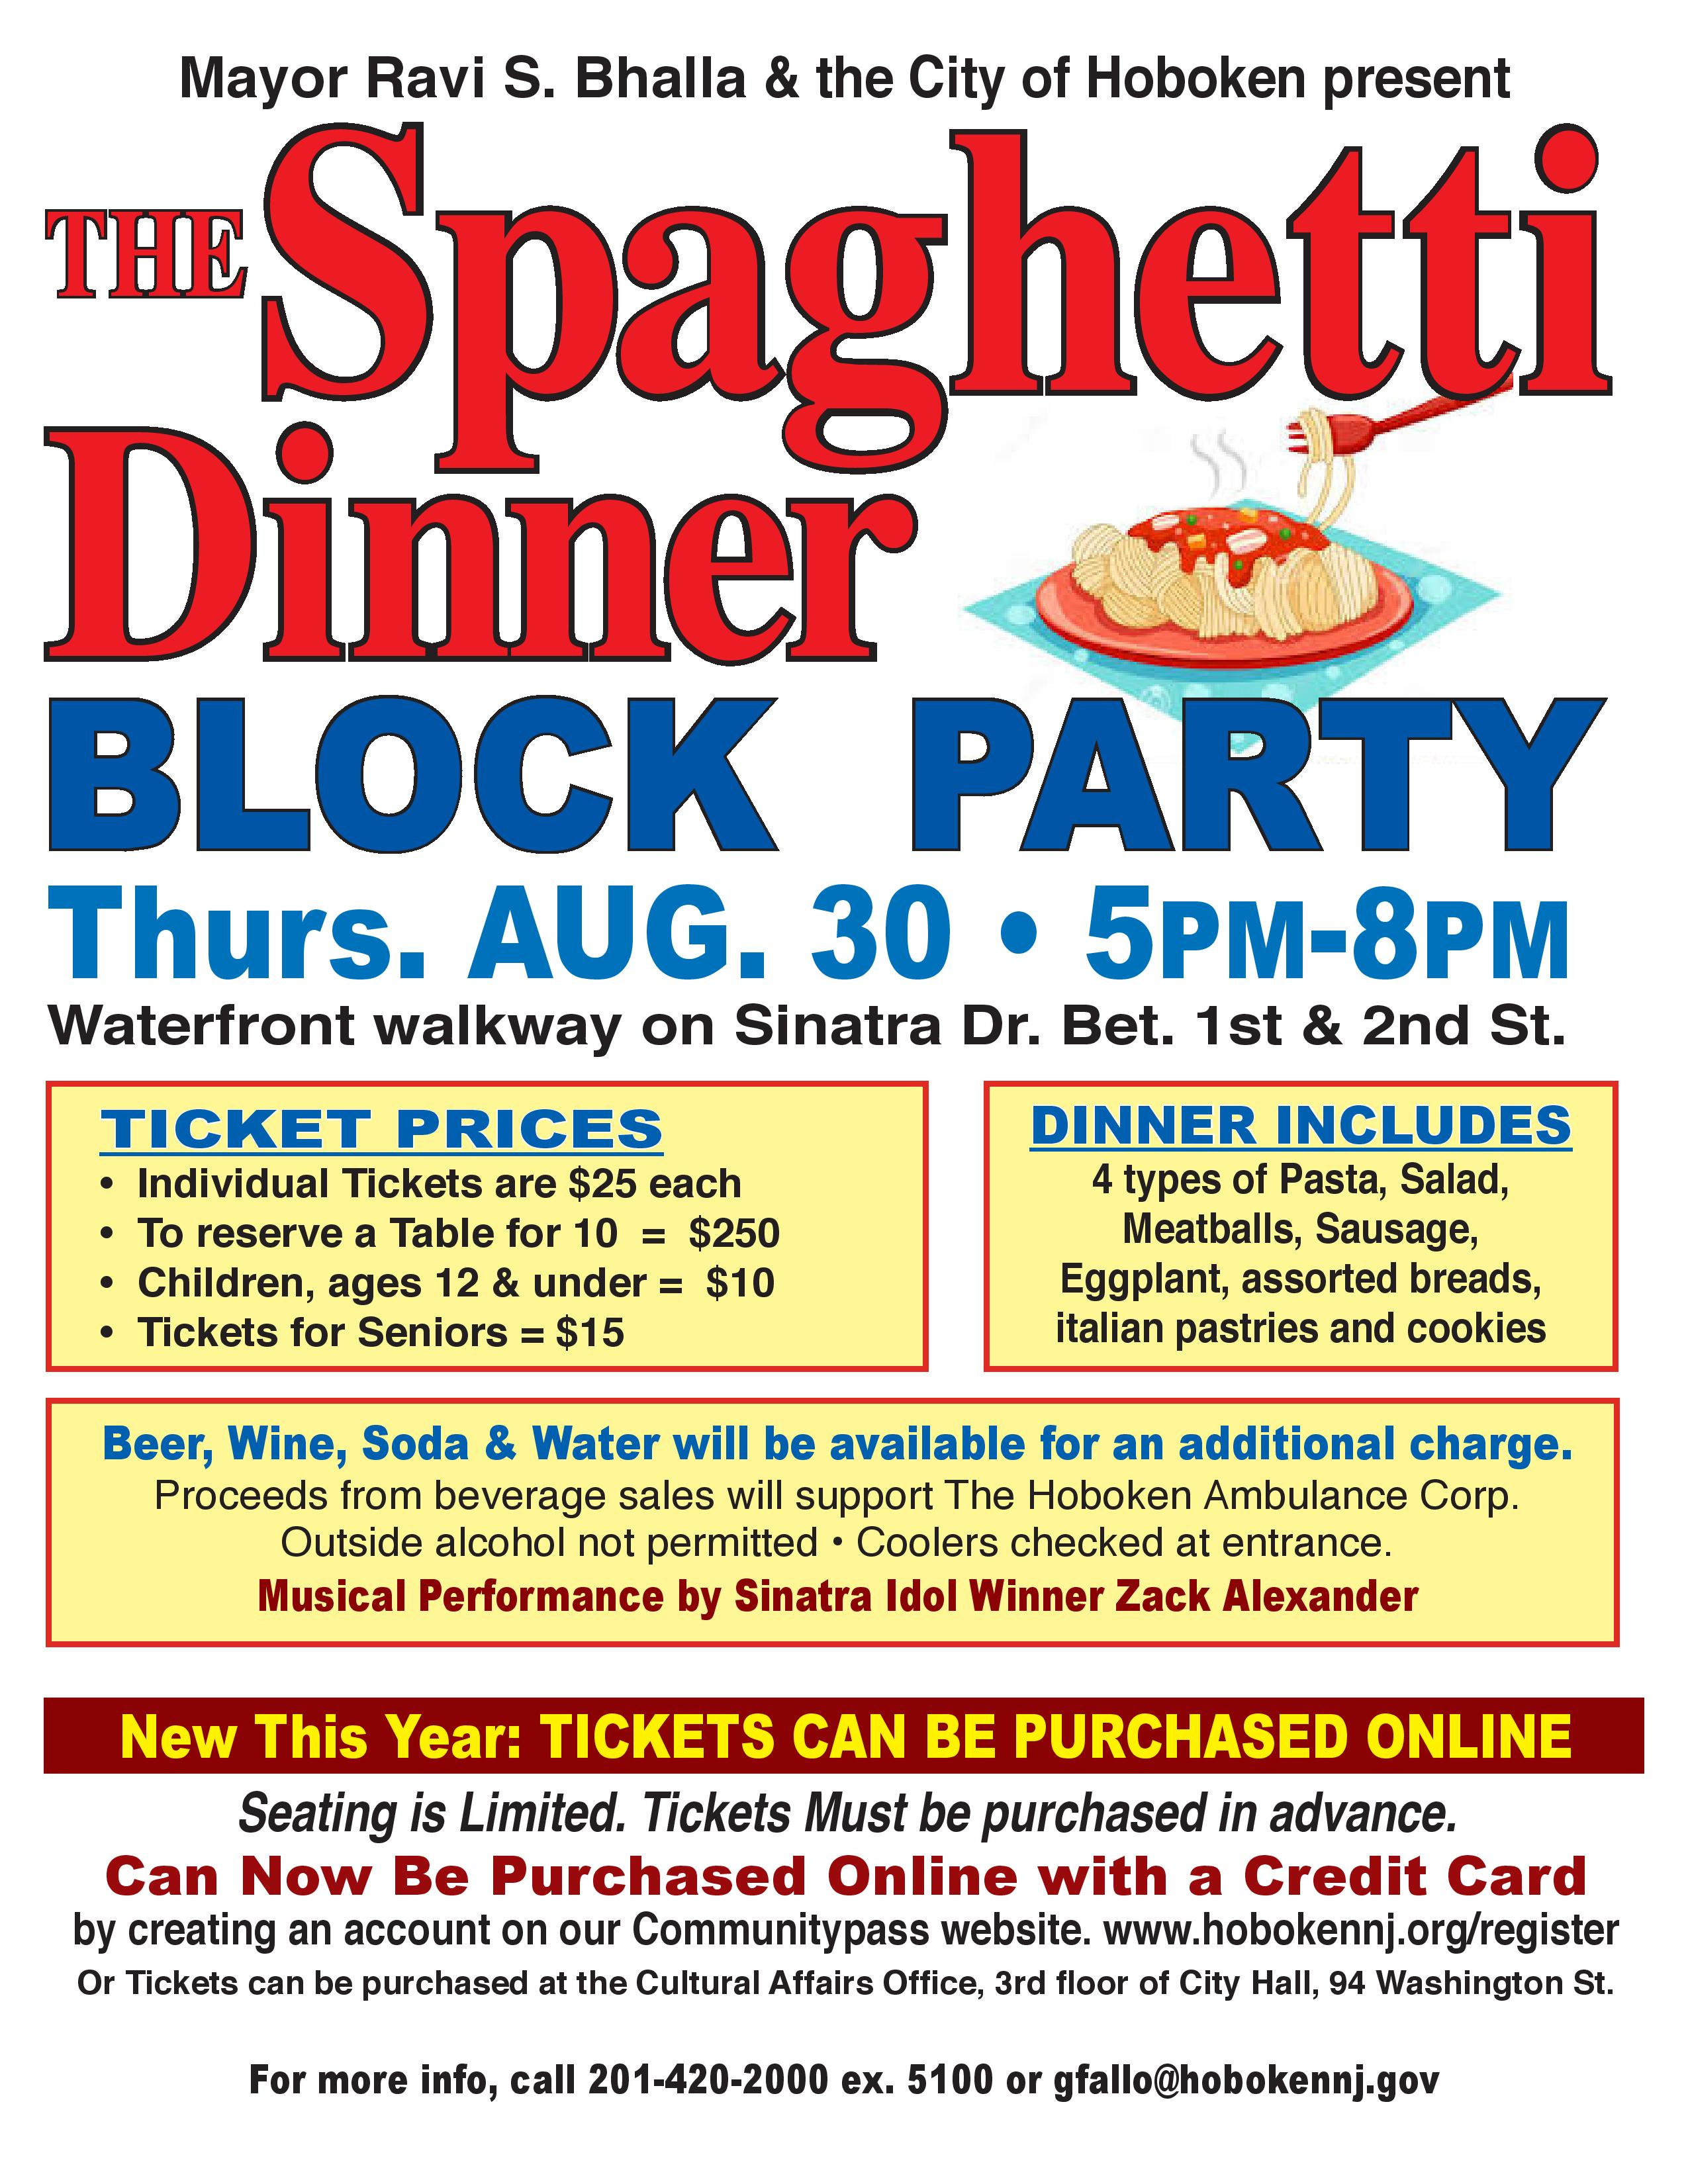 14th Annual Spaghetti Dinner On August 30